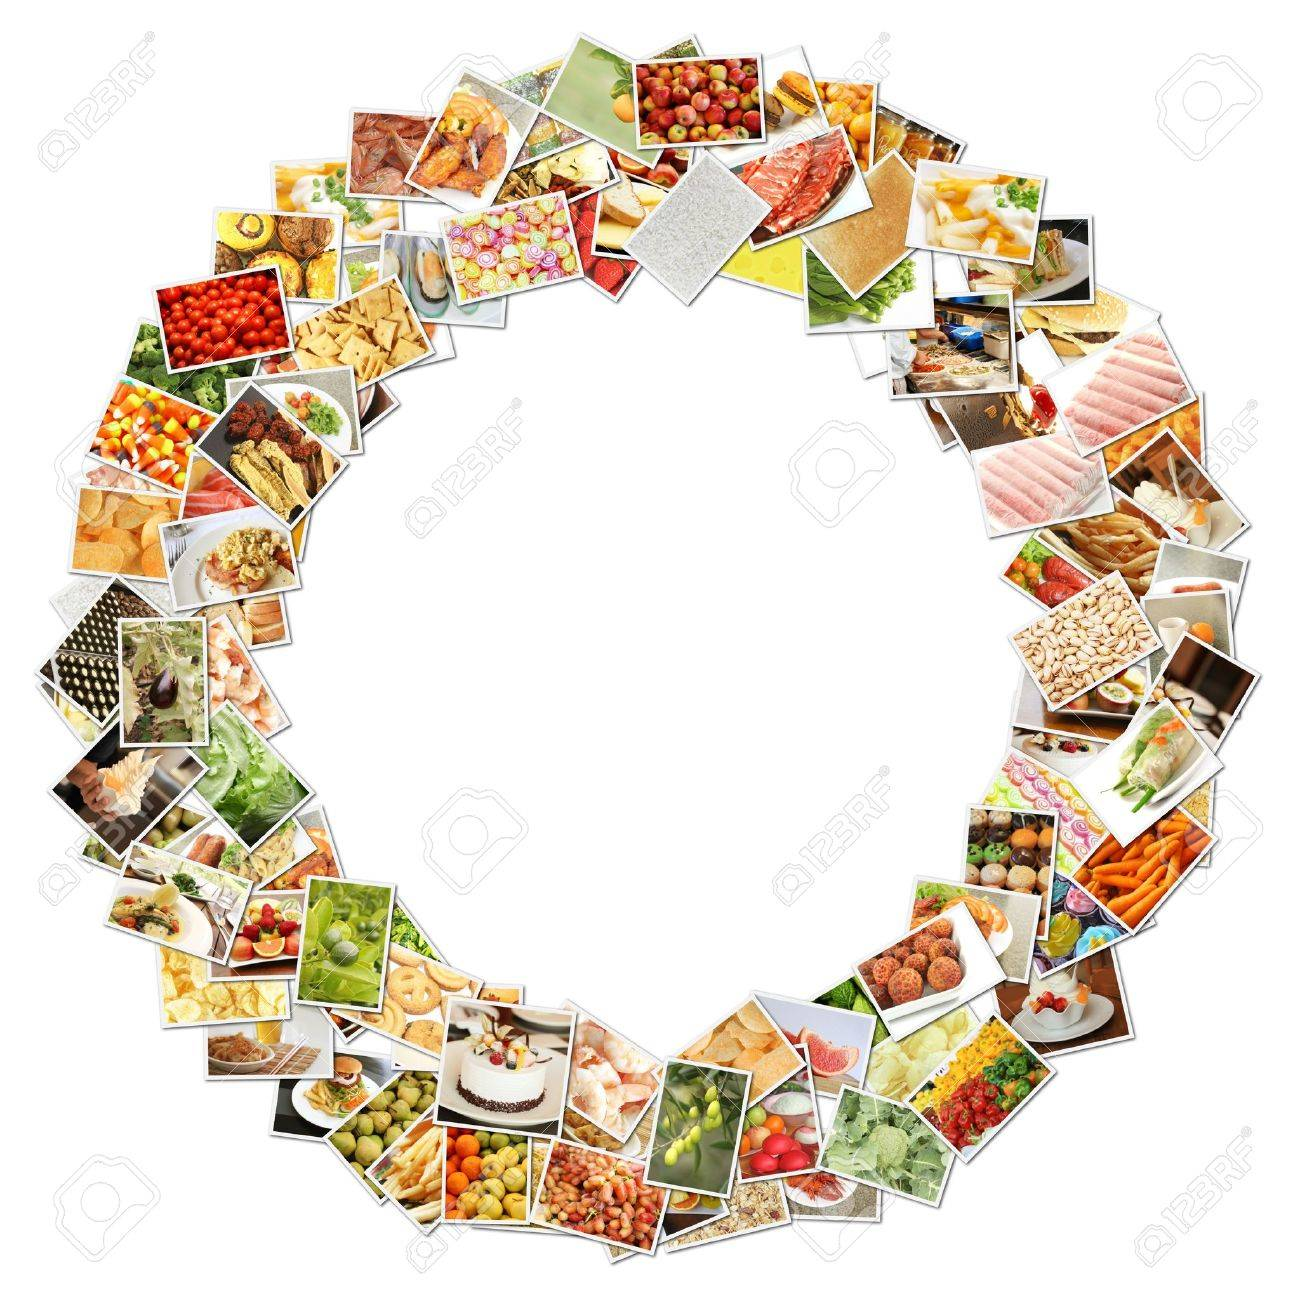 letter o food collage concept art stock photo picture and letter o food collage concept art stock photo 9691827